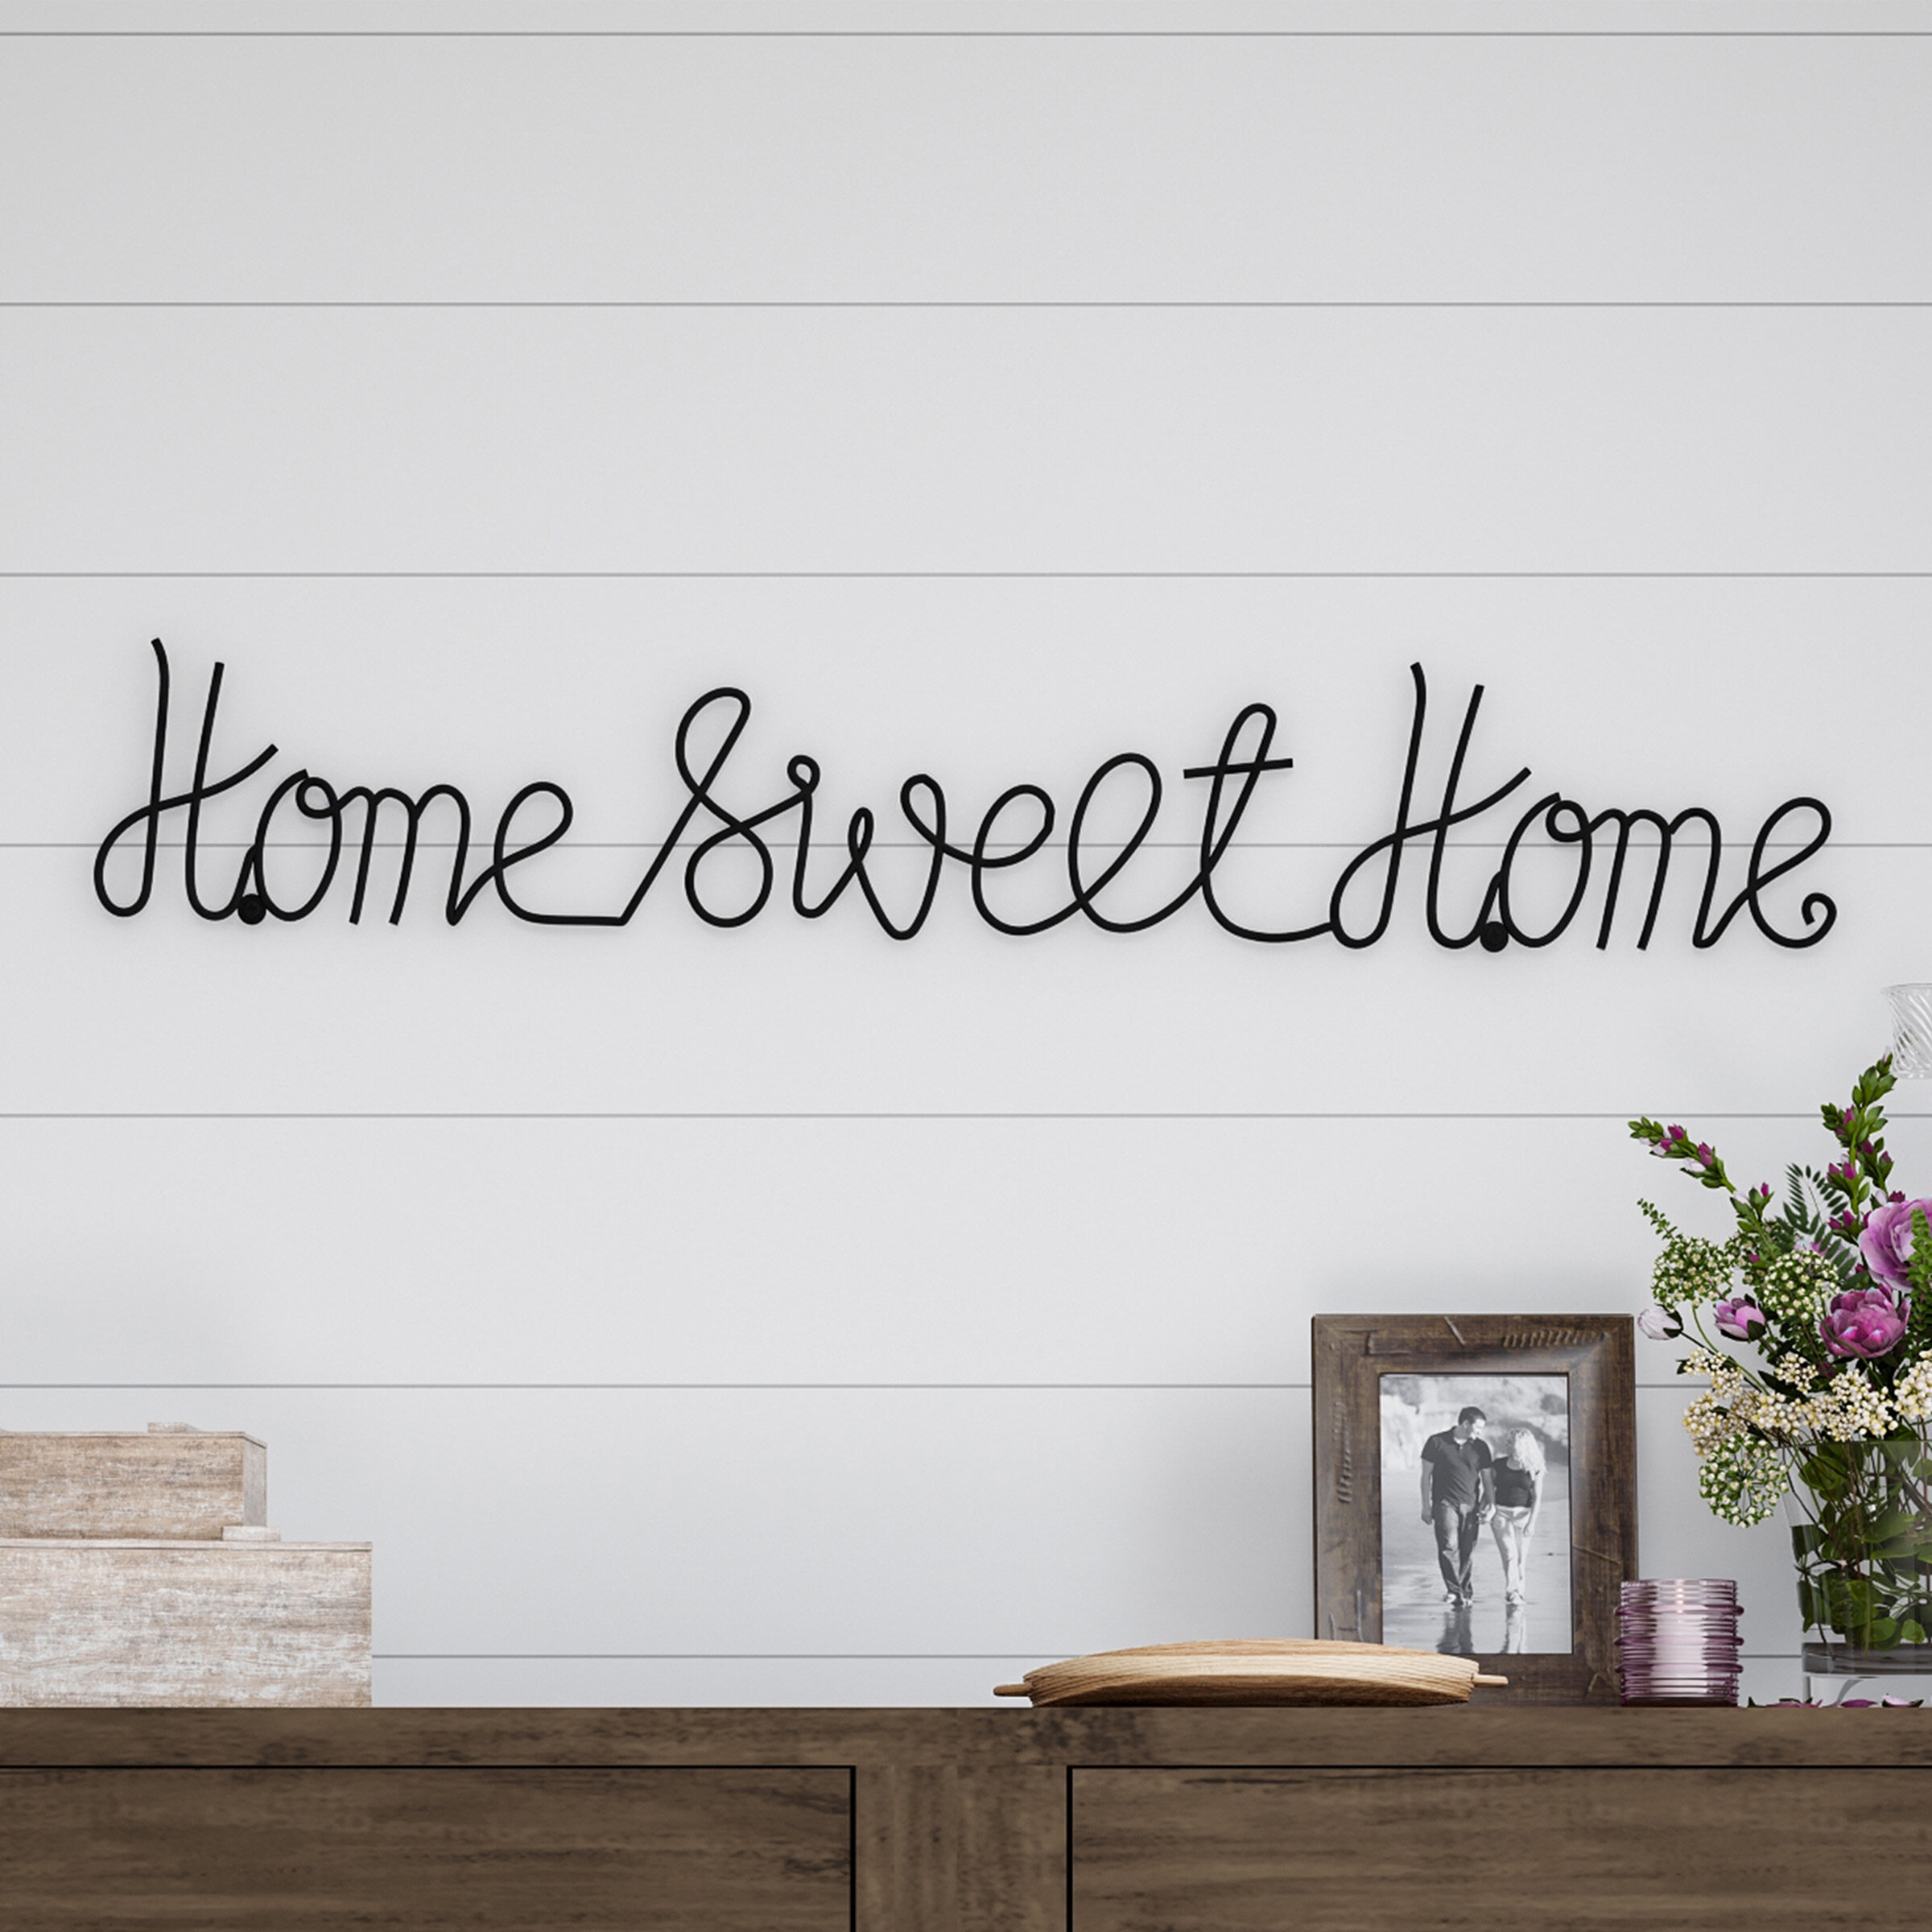 Home Sweet Home Wall Decor.Home Sweet Home Decor Home Decorating Ideas